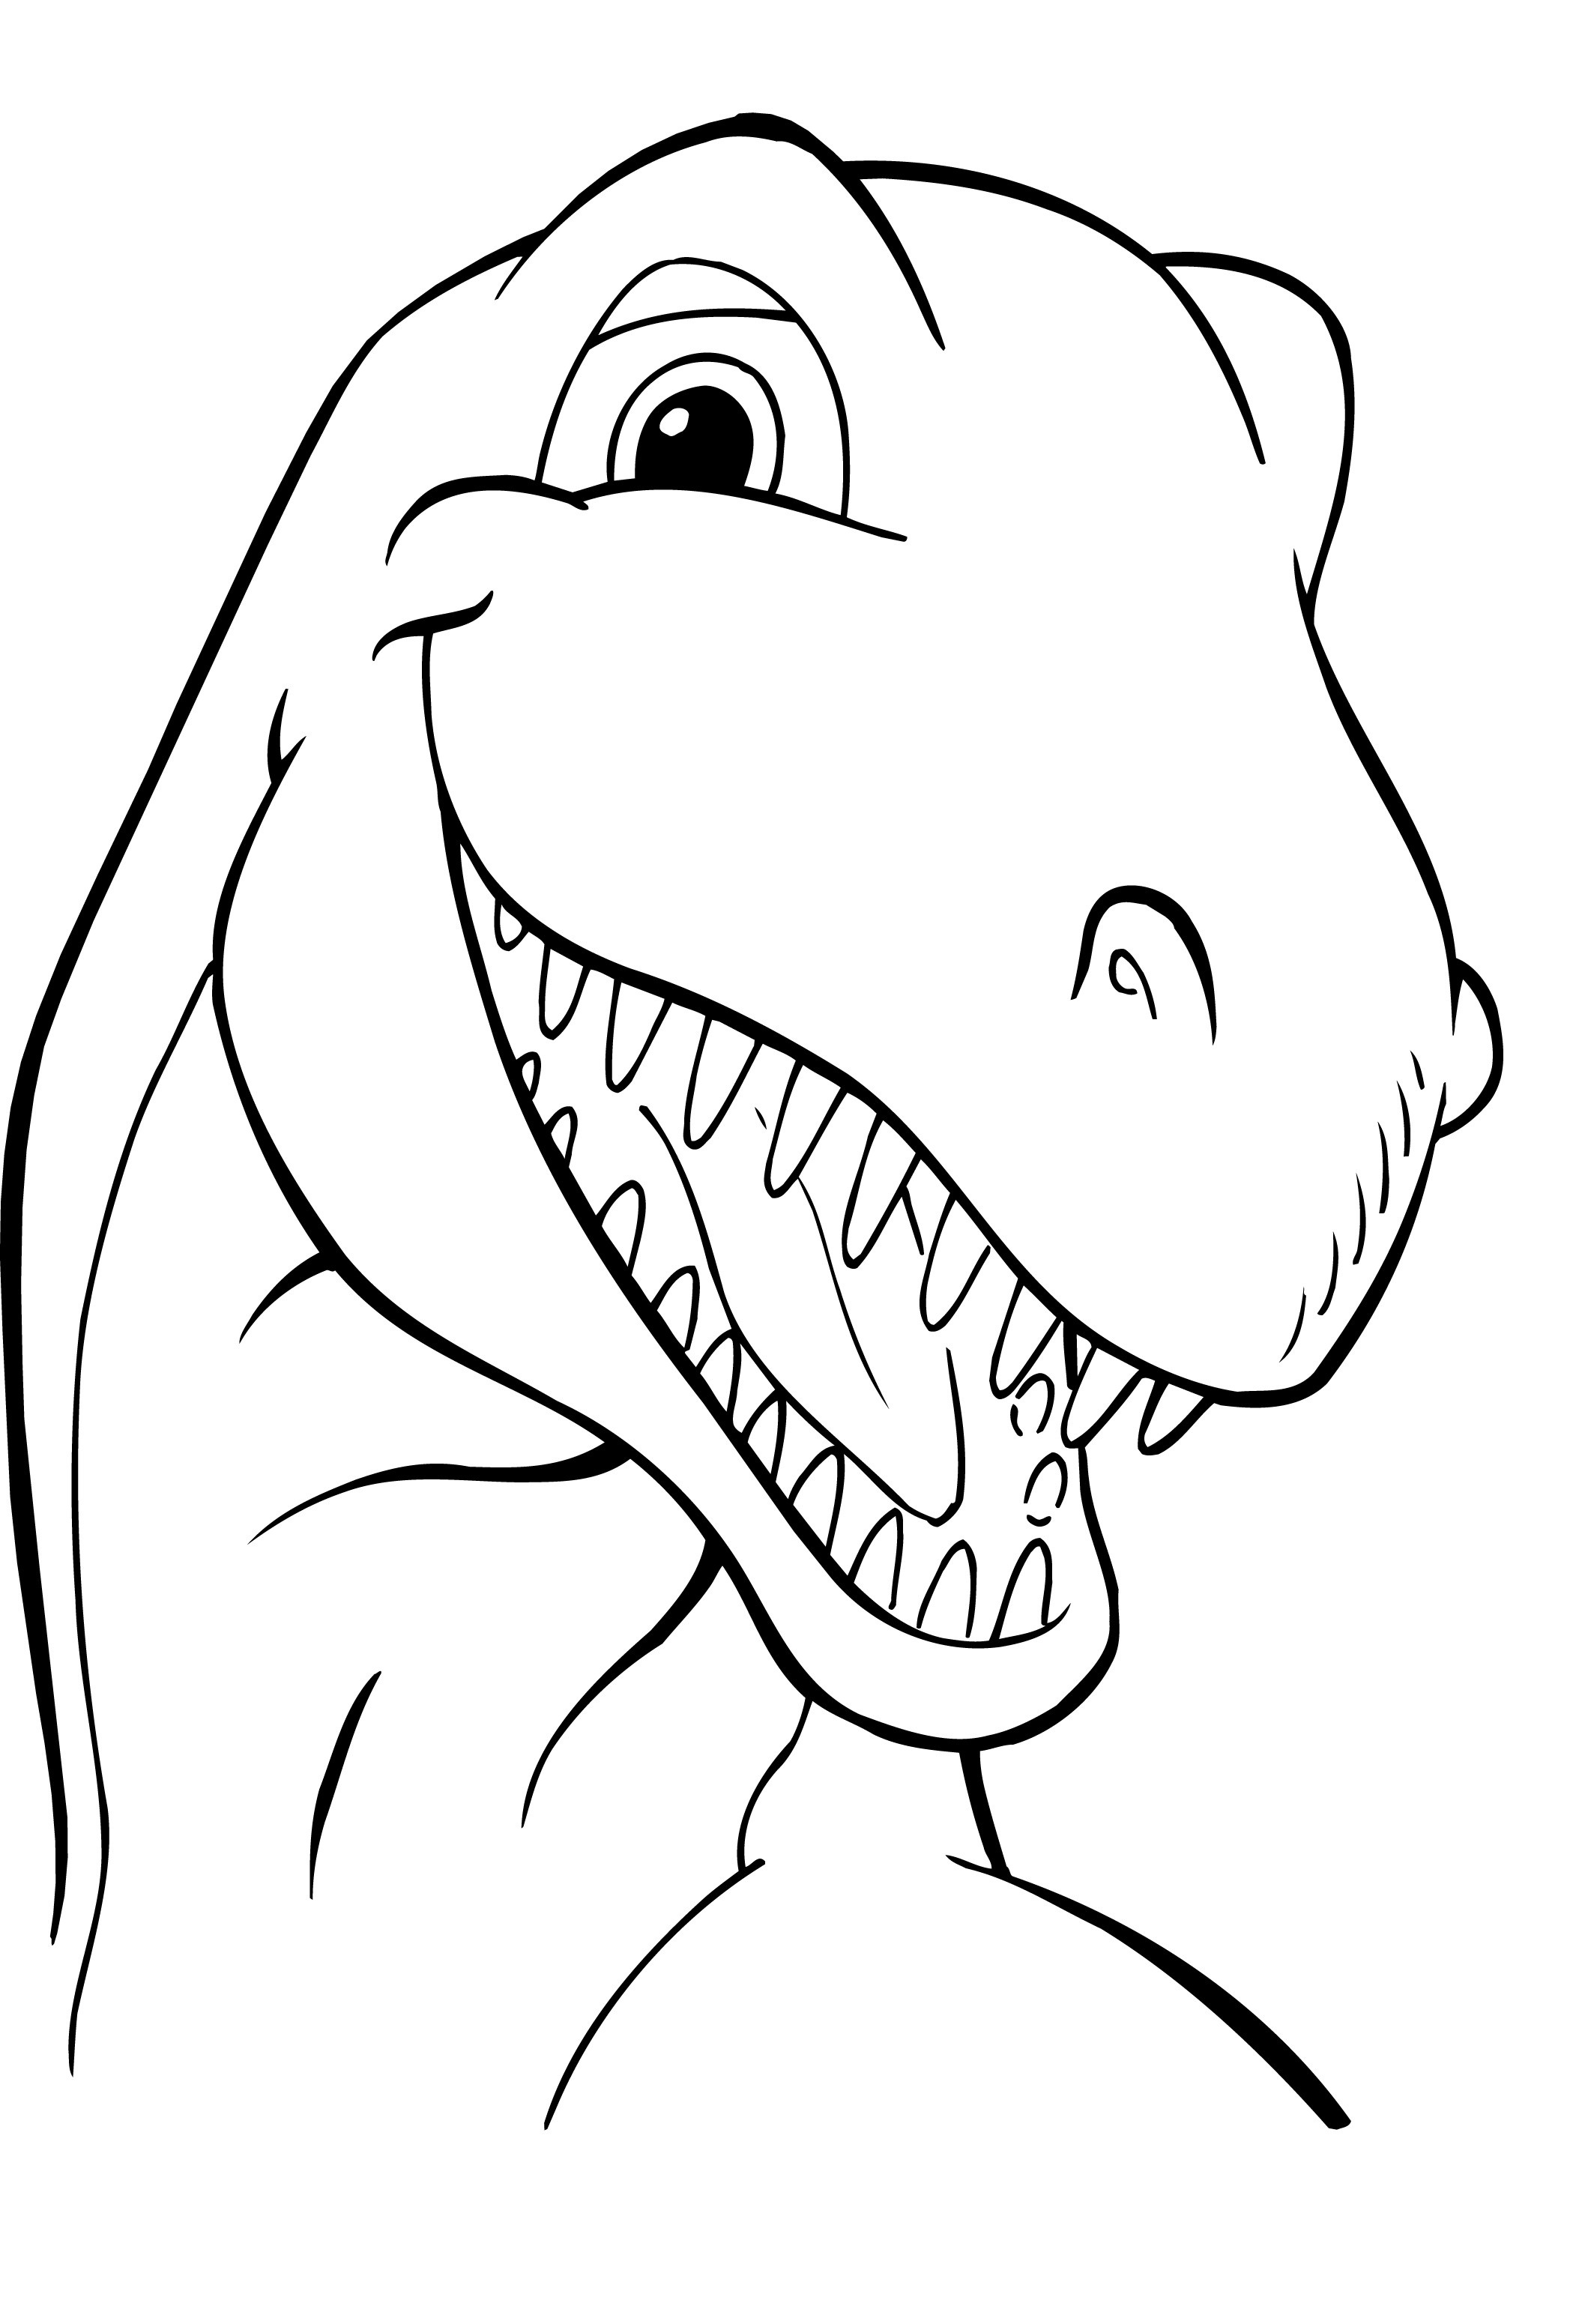 printable pictures of dinosaurs print download dinosaur t rex coloring pages for kids dinosaurs printable pictures of